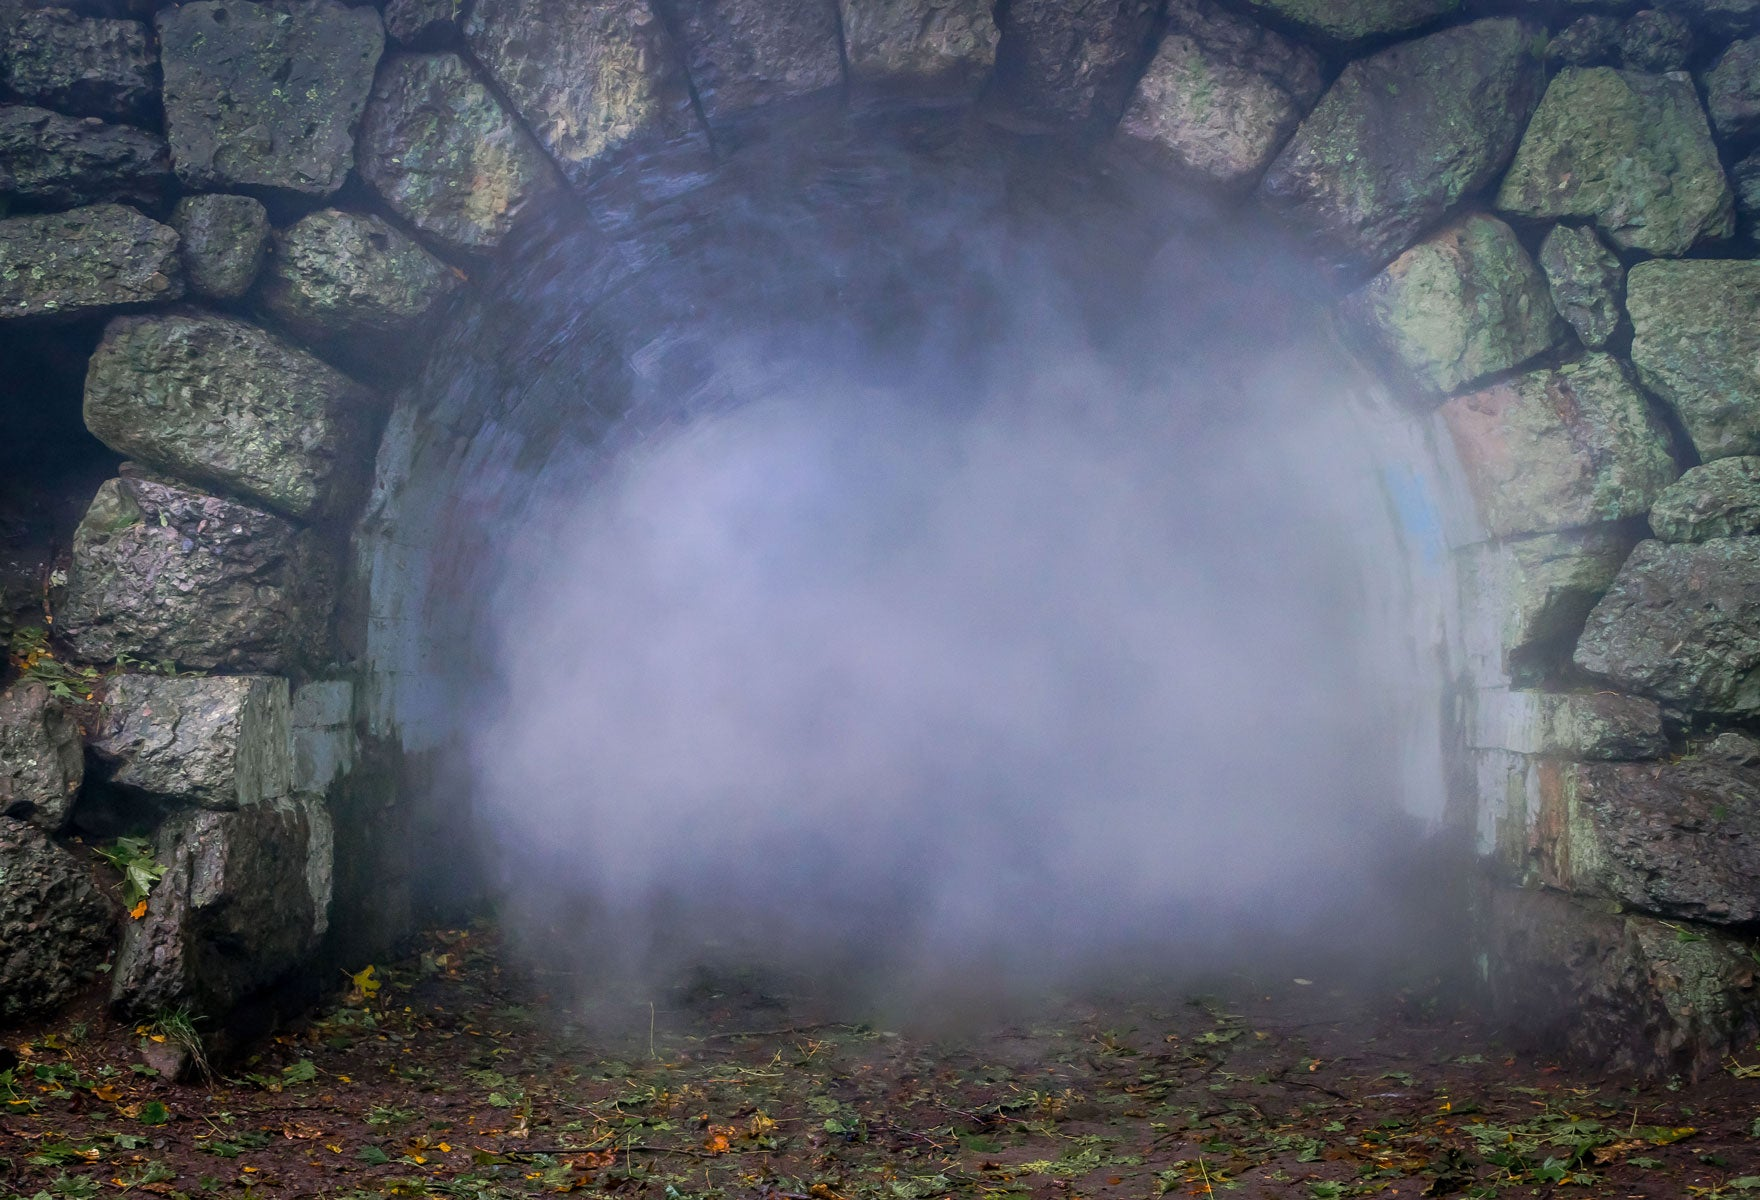 Fox Stone Cave Smoke Vinyl Photos Backdrop-Foxbackdrop